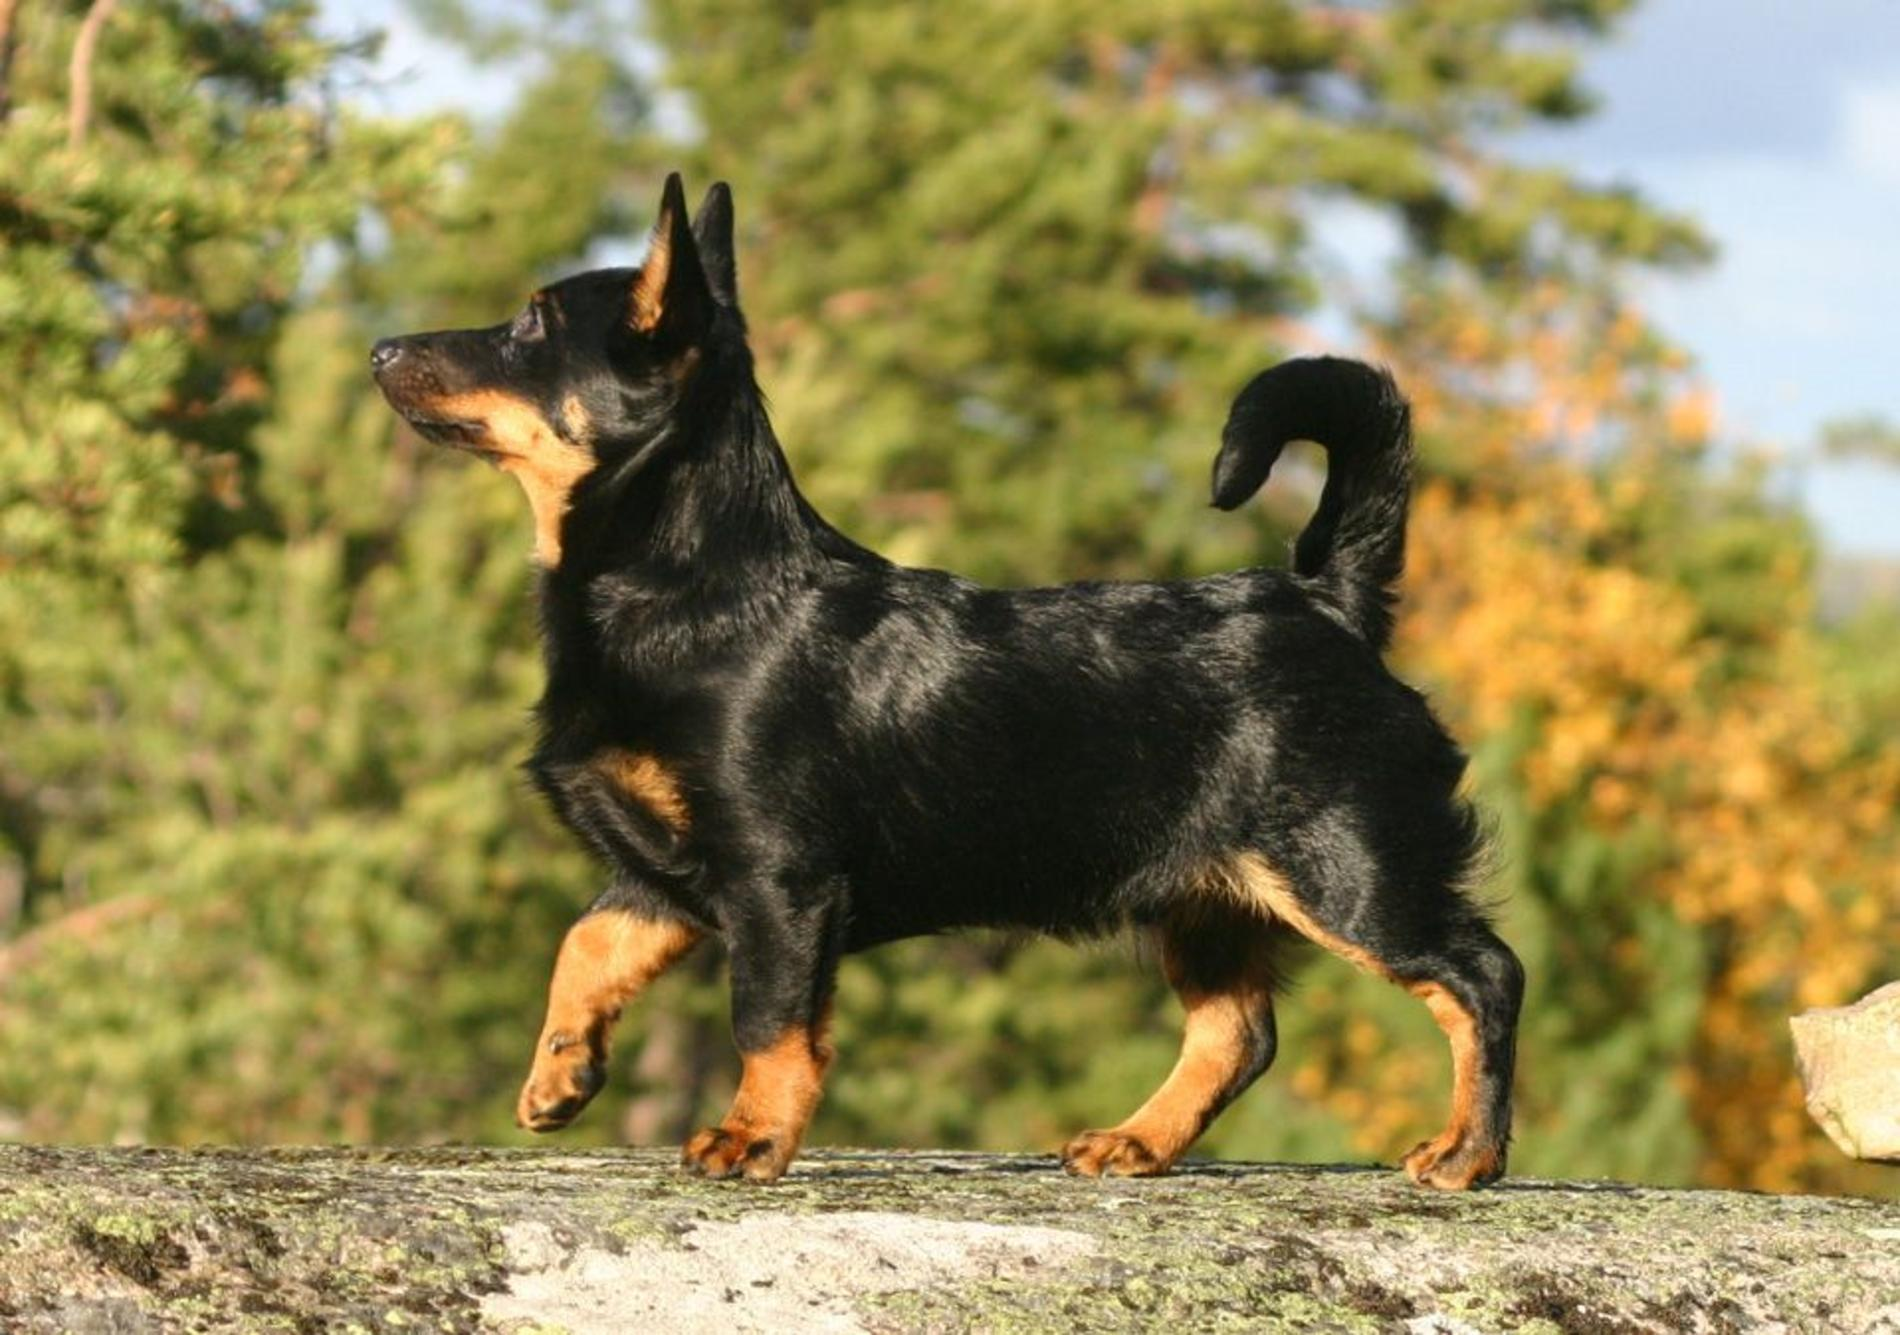 Lancashire Heeler Dog: Lancashire Lancashire Heeler Dog For A Walk Breed